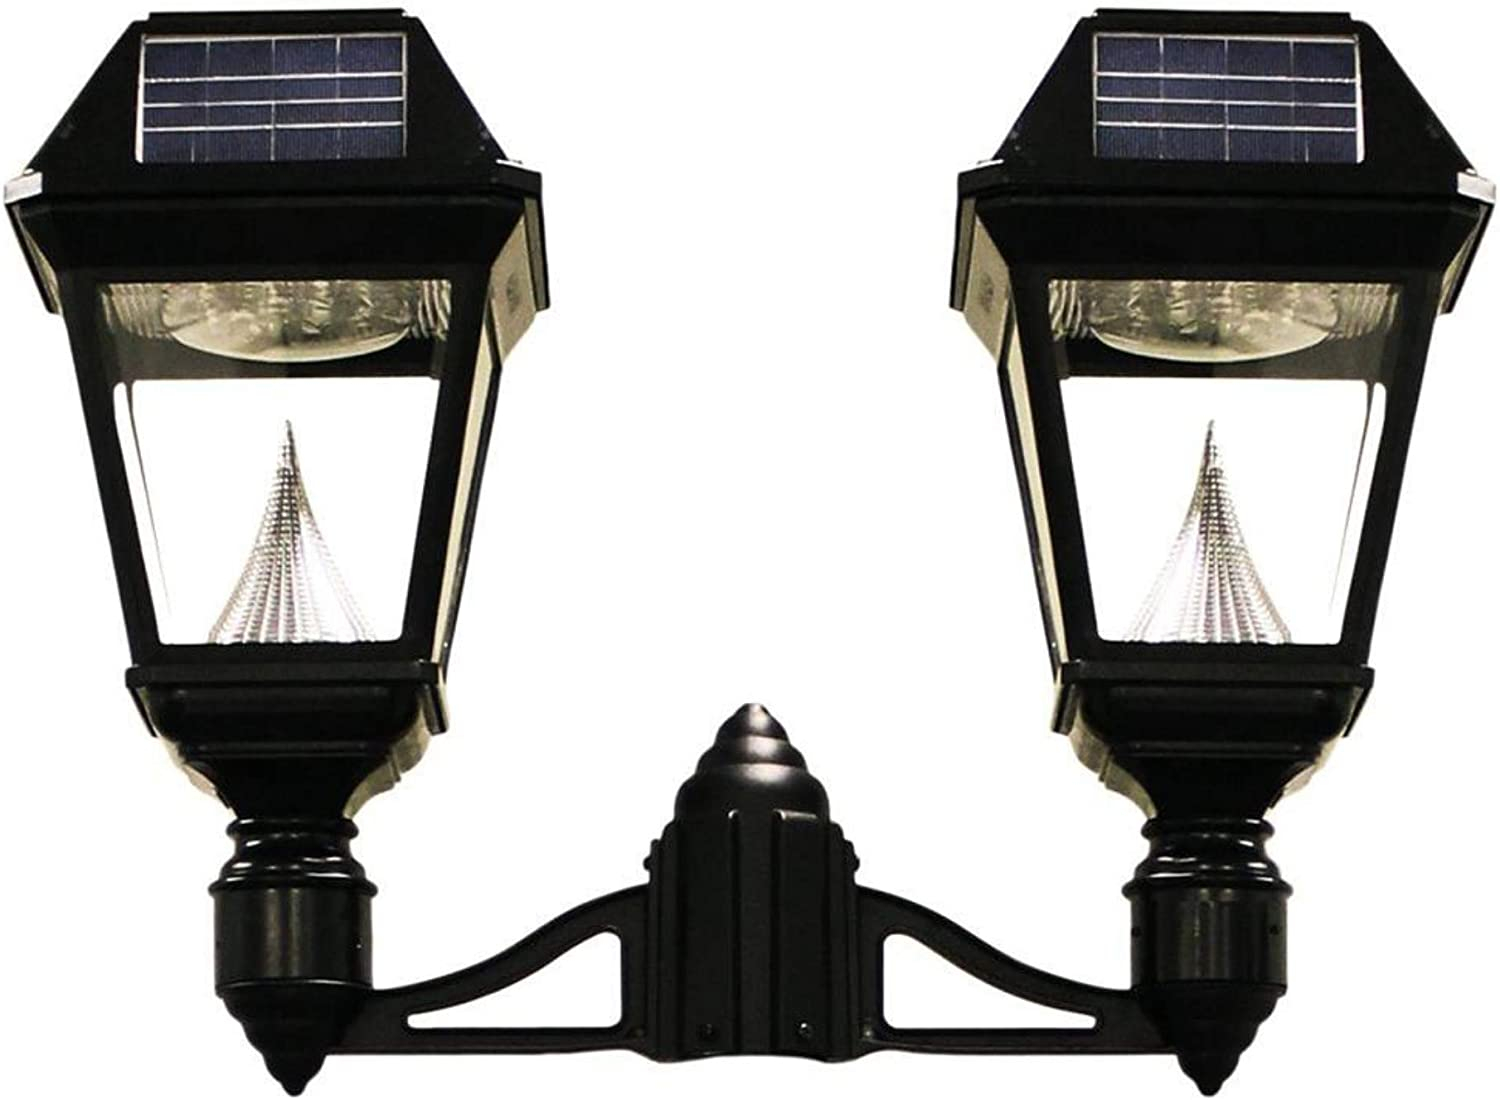 GAMA SONIC Imperial II Single Head Solar Post Lamp 3 Fitter Mount GS-97NF LED Light Black